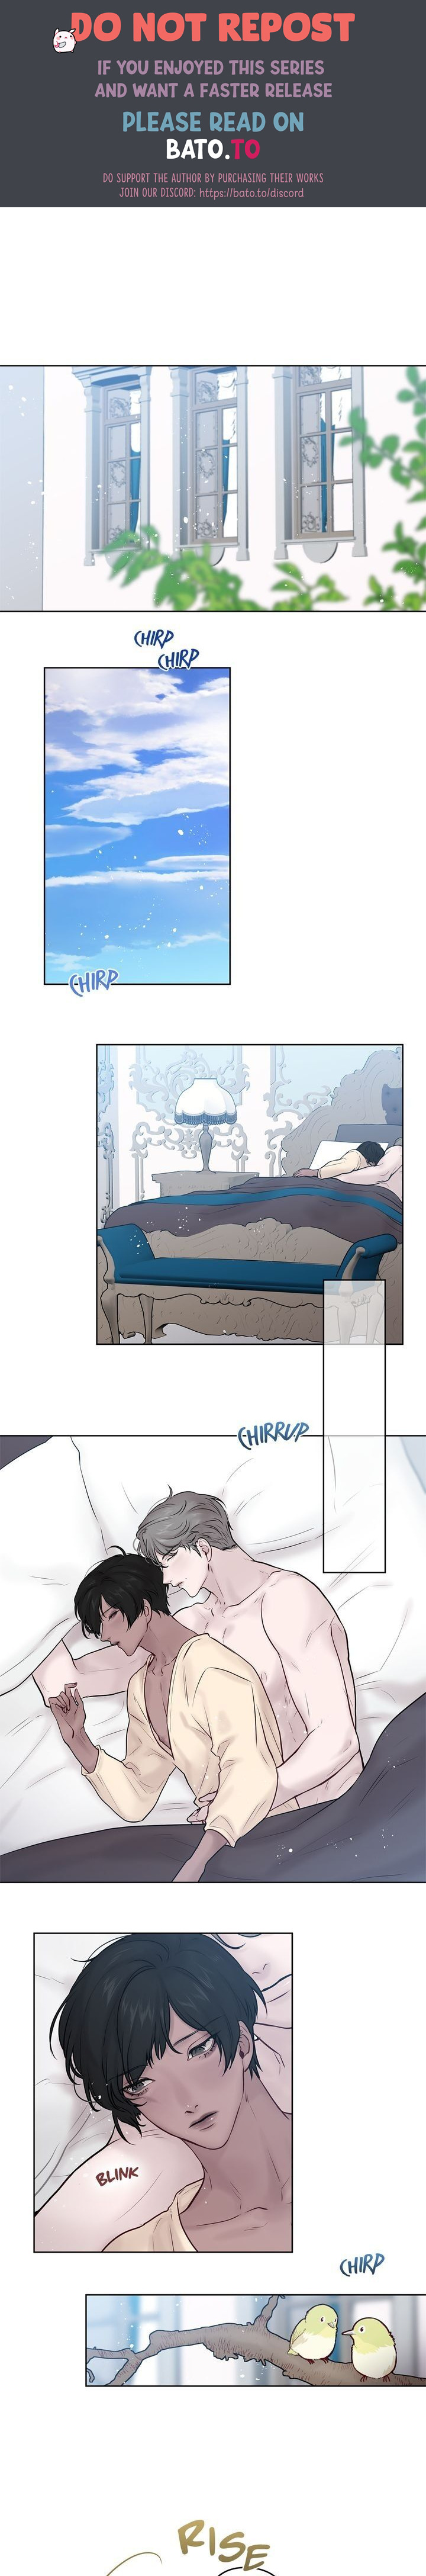 Spinel - chapter 31 - #1